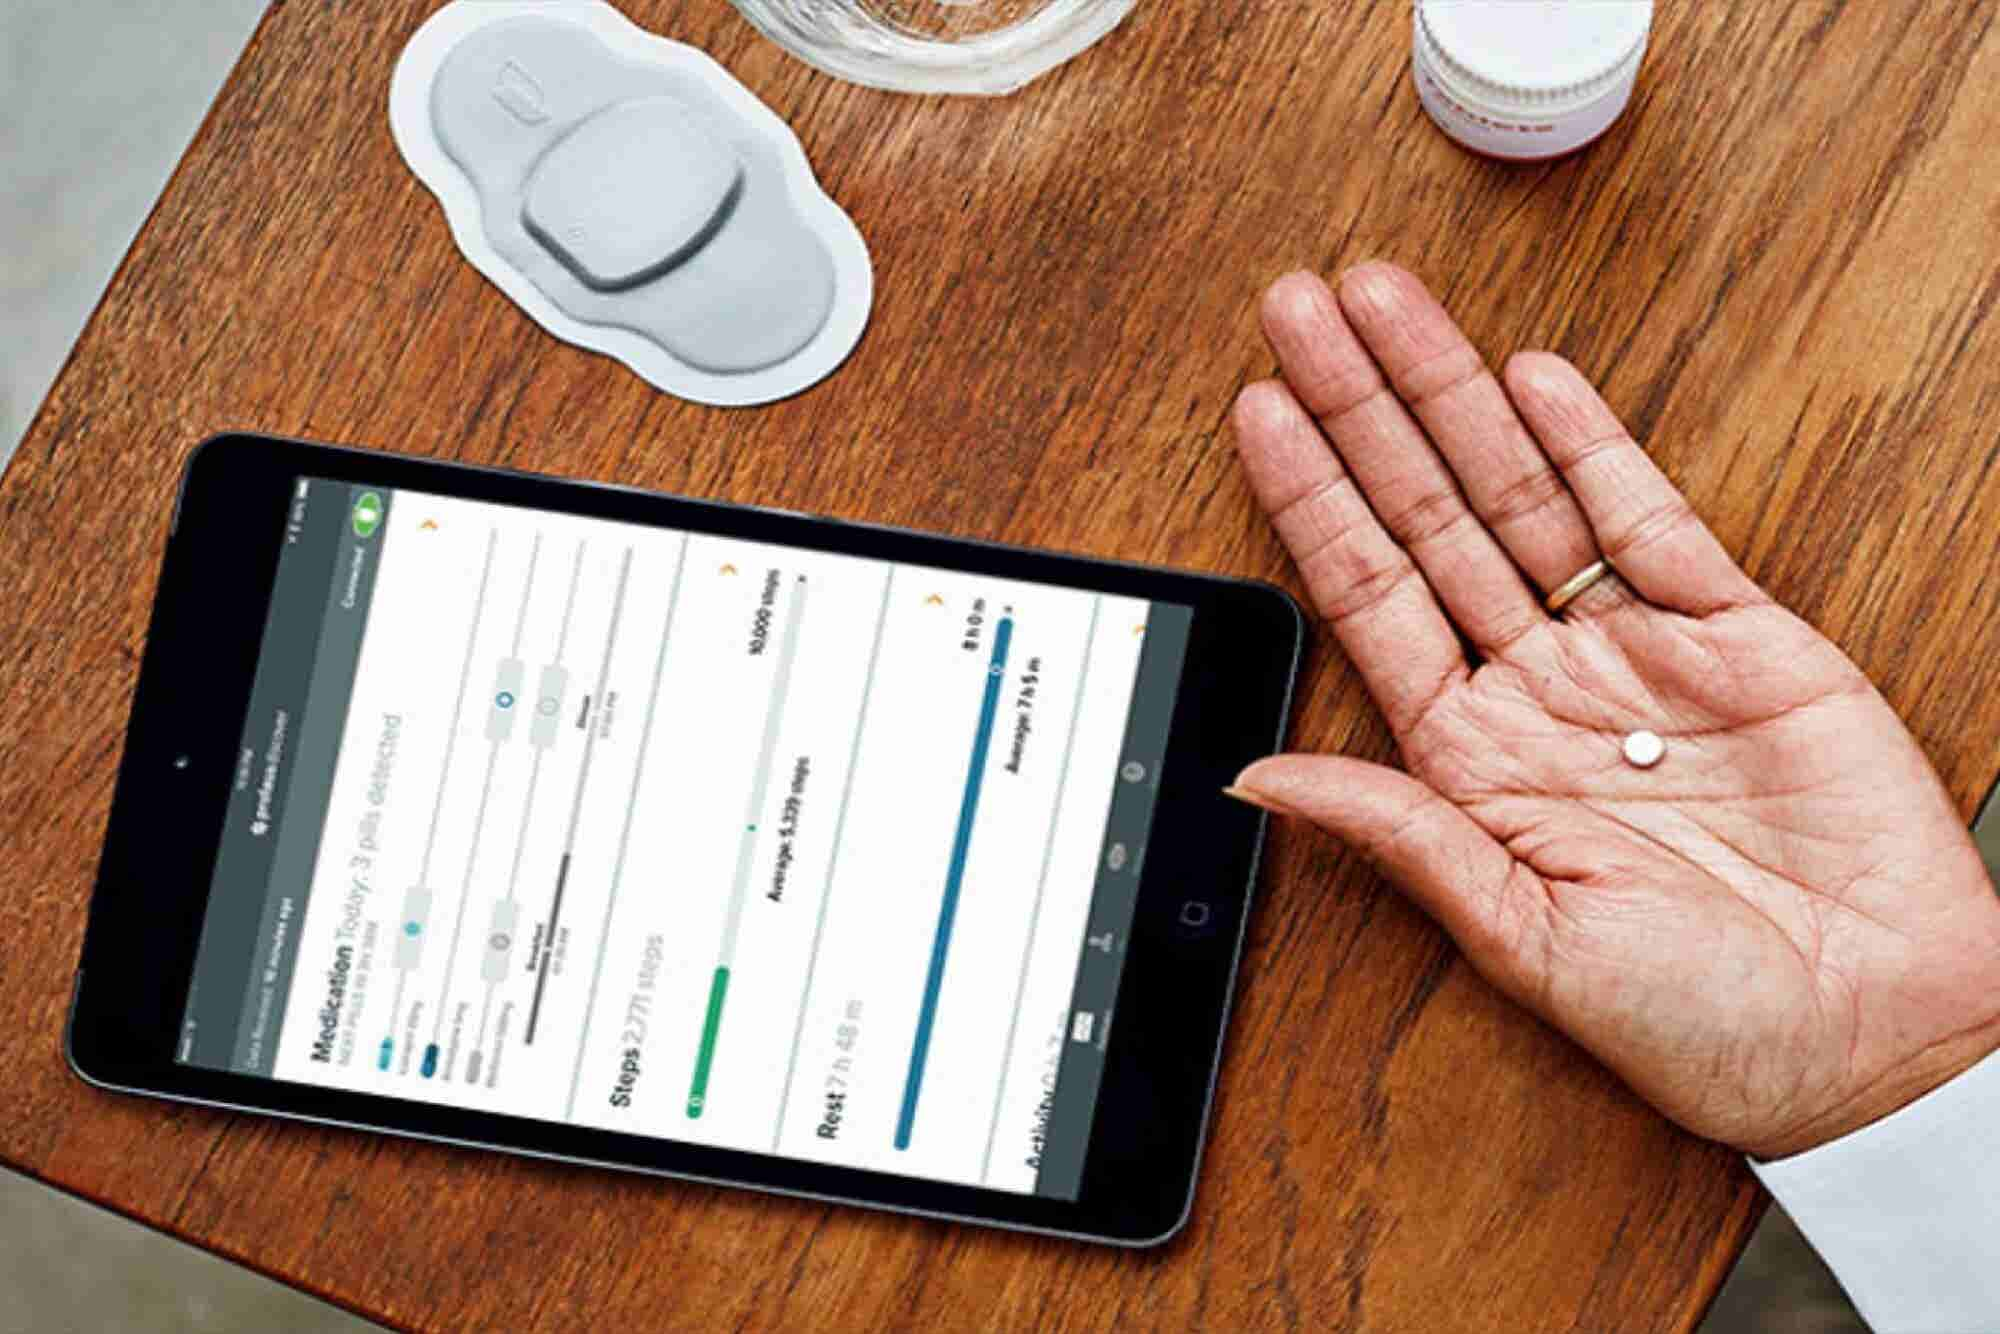 Get Ready for Digital Pills: FDA Clears Self-Tracking Drug